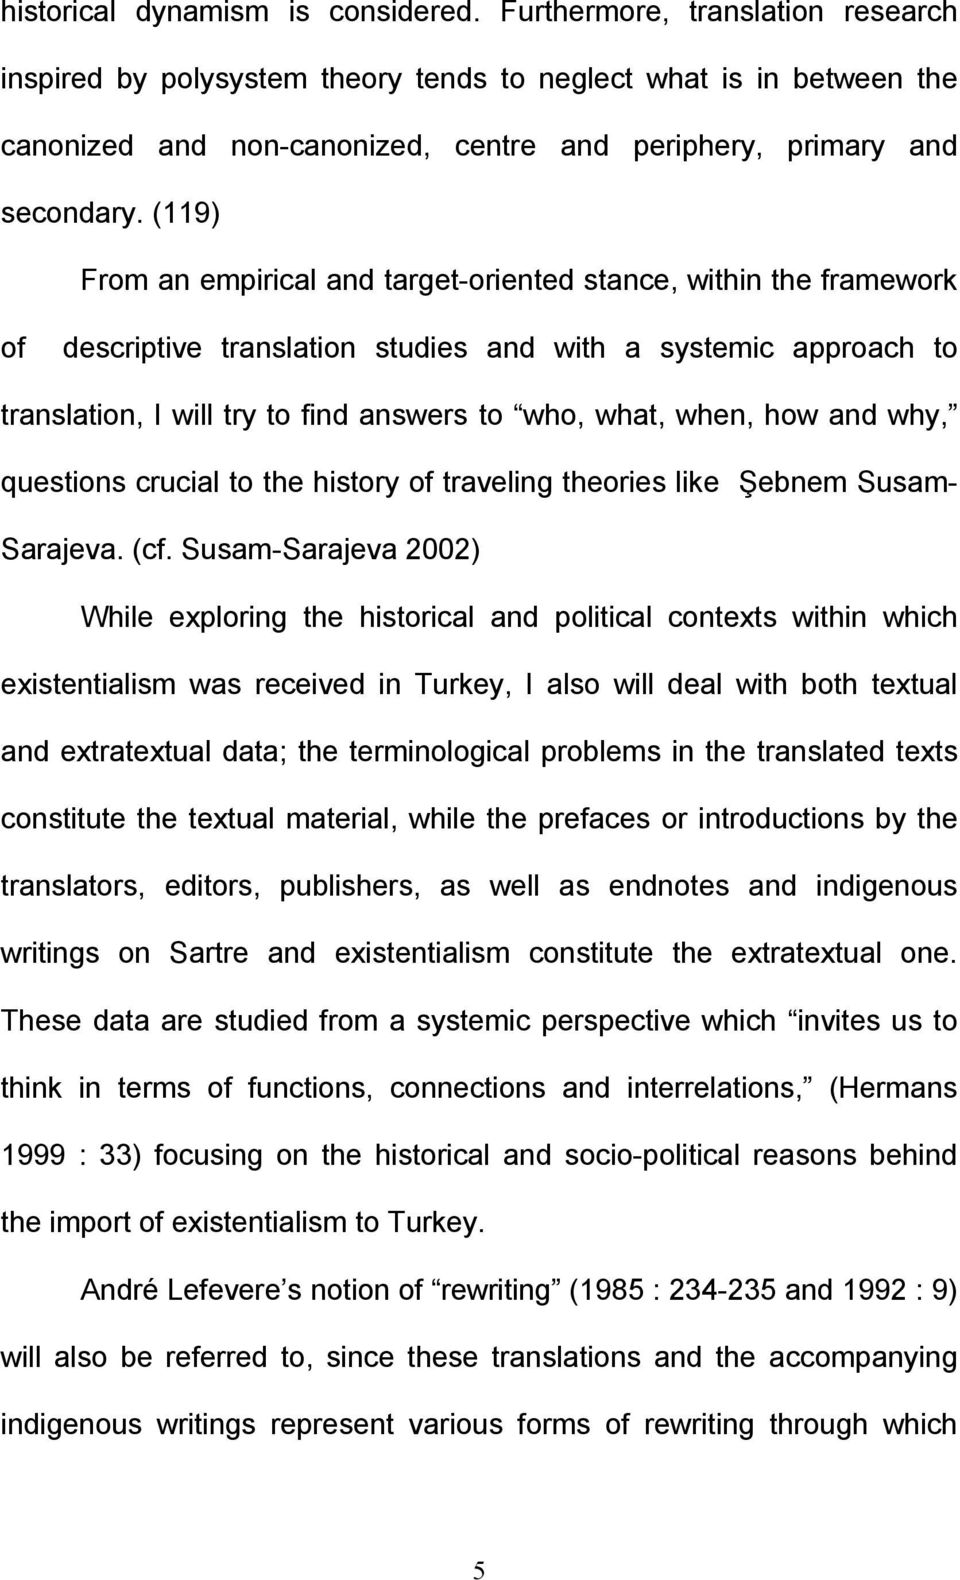 (119) From an empirical and target-oriented stance, within the framework of descriptive translation studies and with a systemic approach to translation, I will try to find answers to who, what, when,